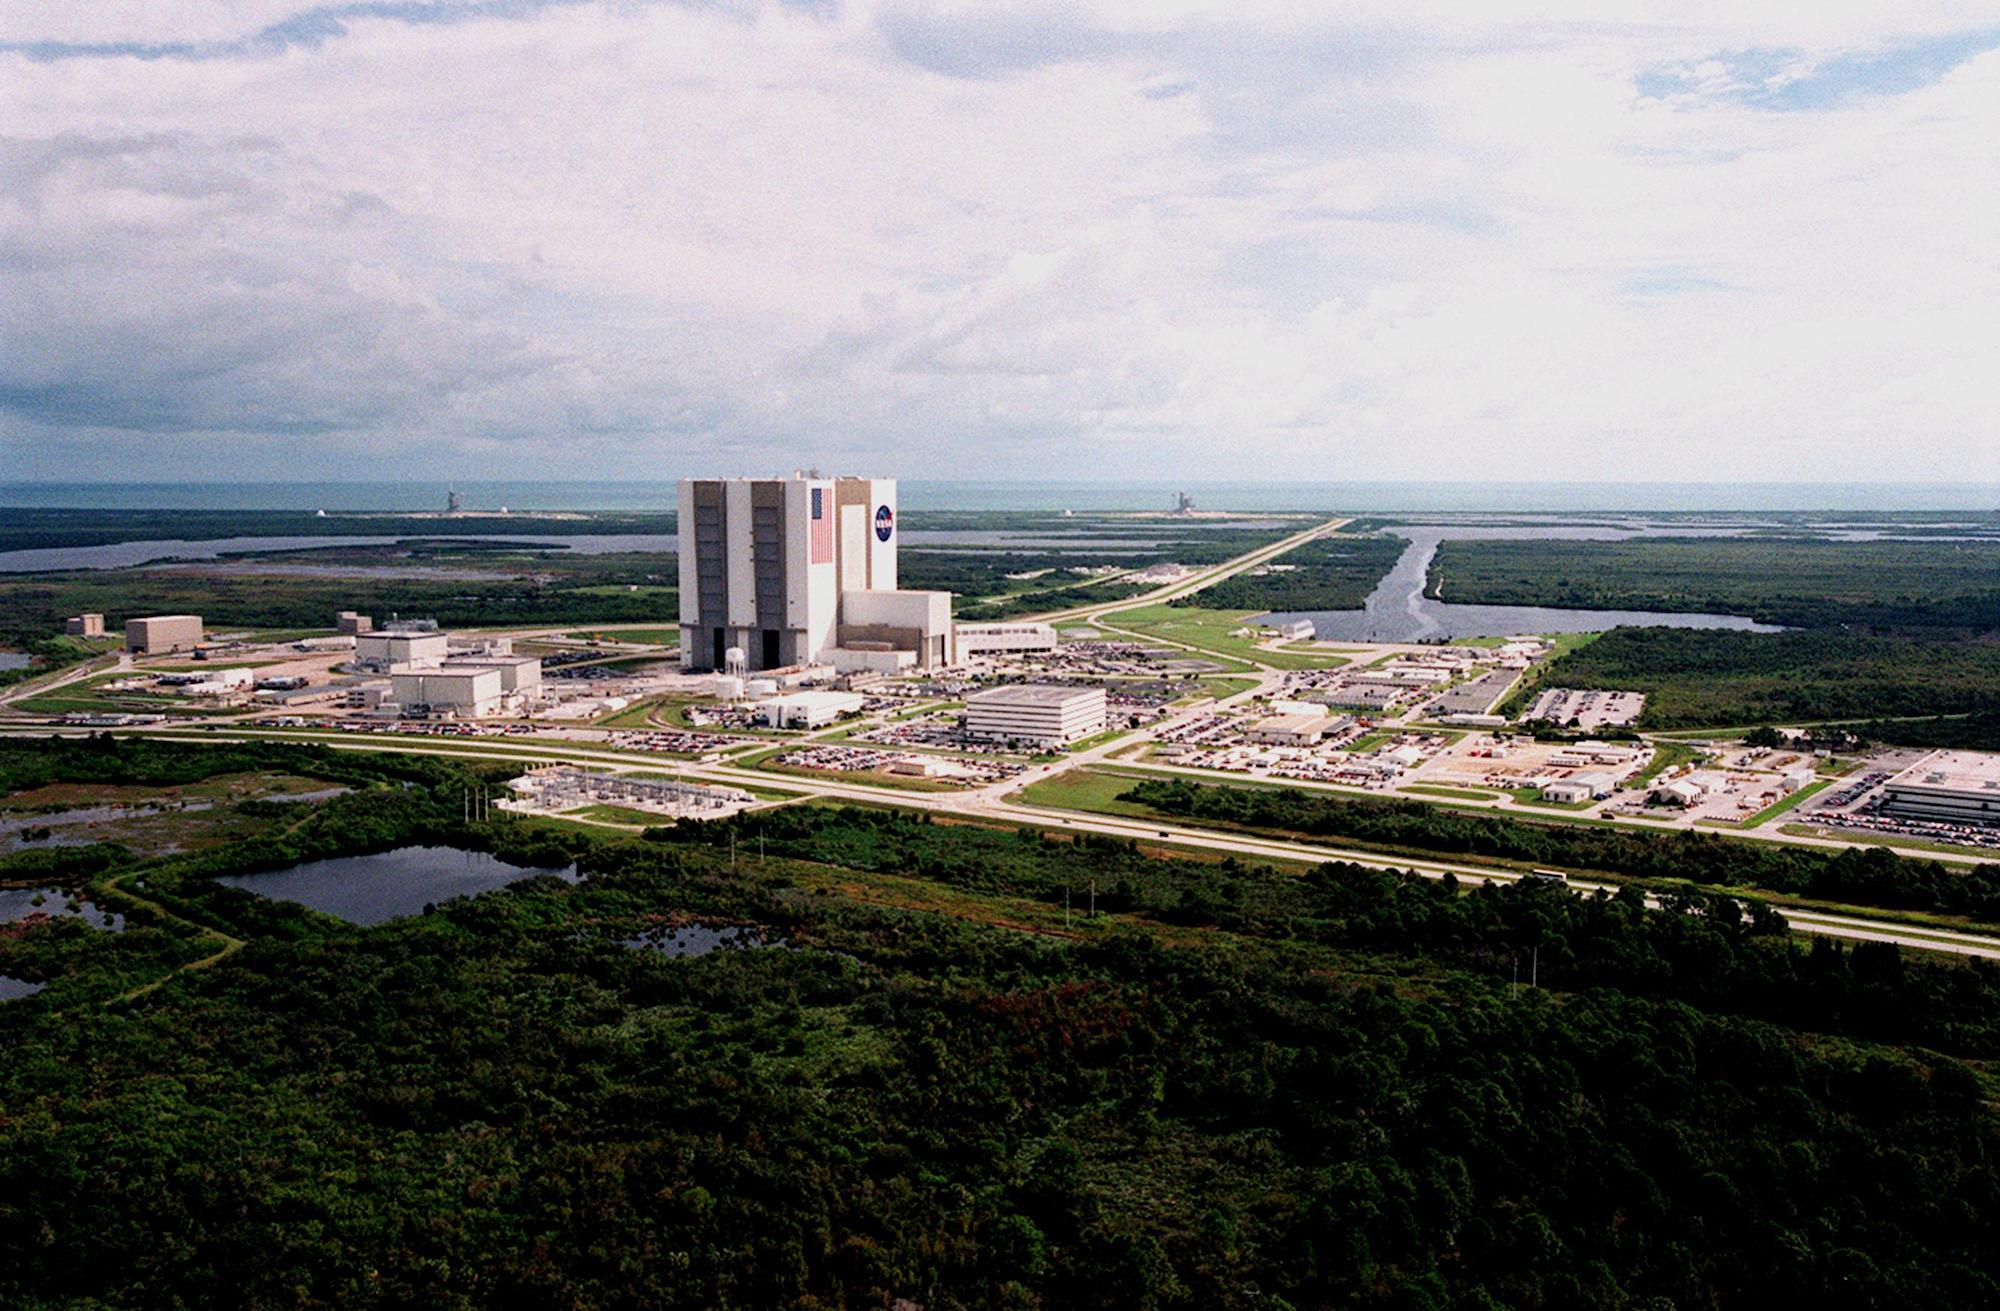 NASA has opened a new launch pad at the Kennedy Space Center for more commercial customers